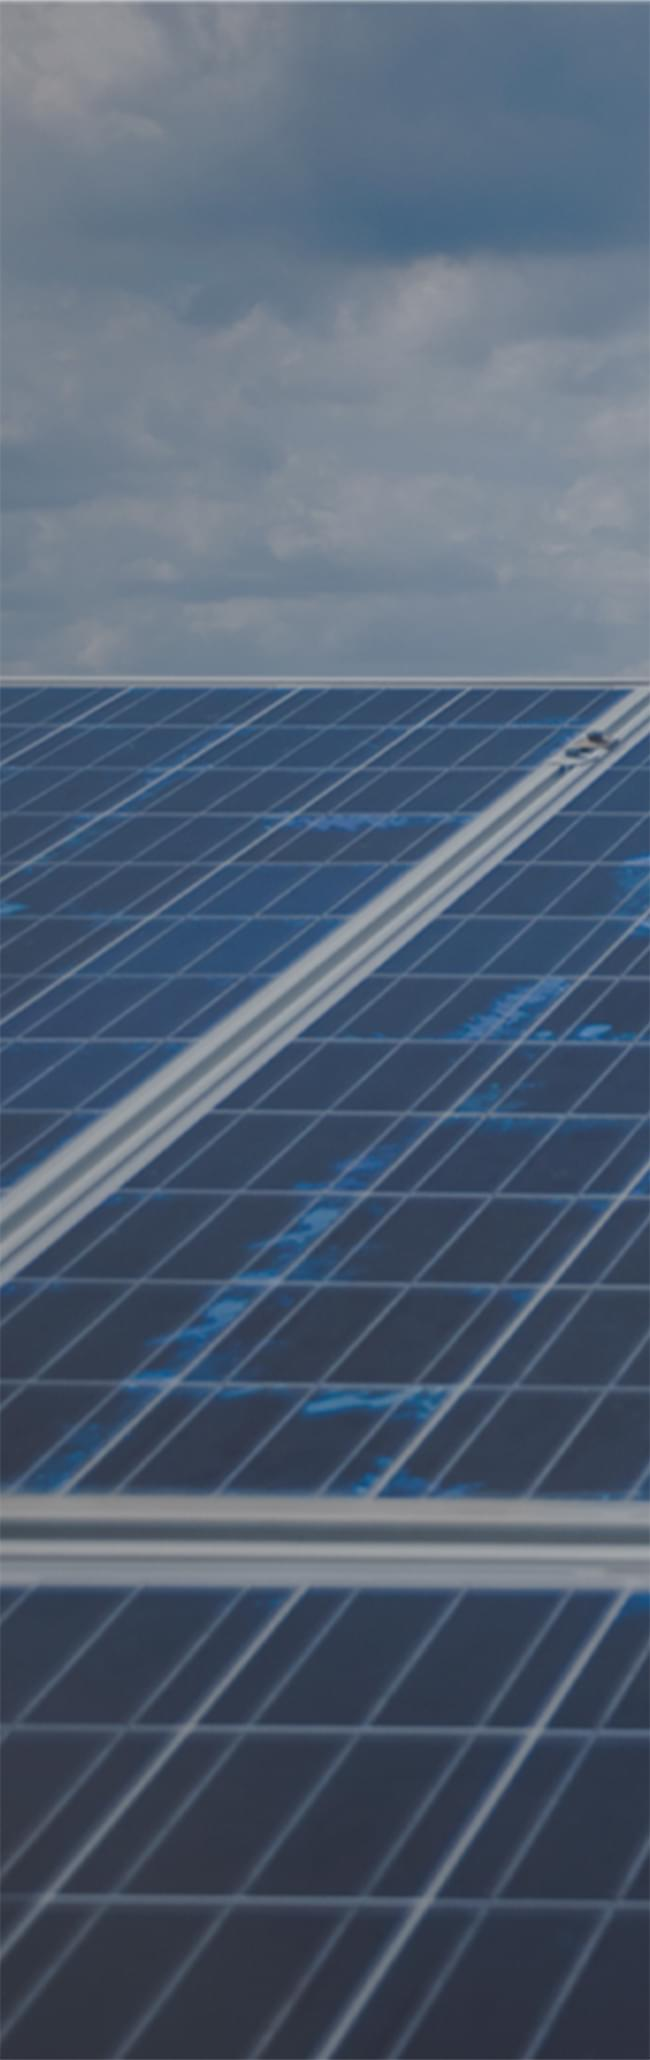 National Grid employee looking at solar panels